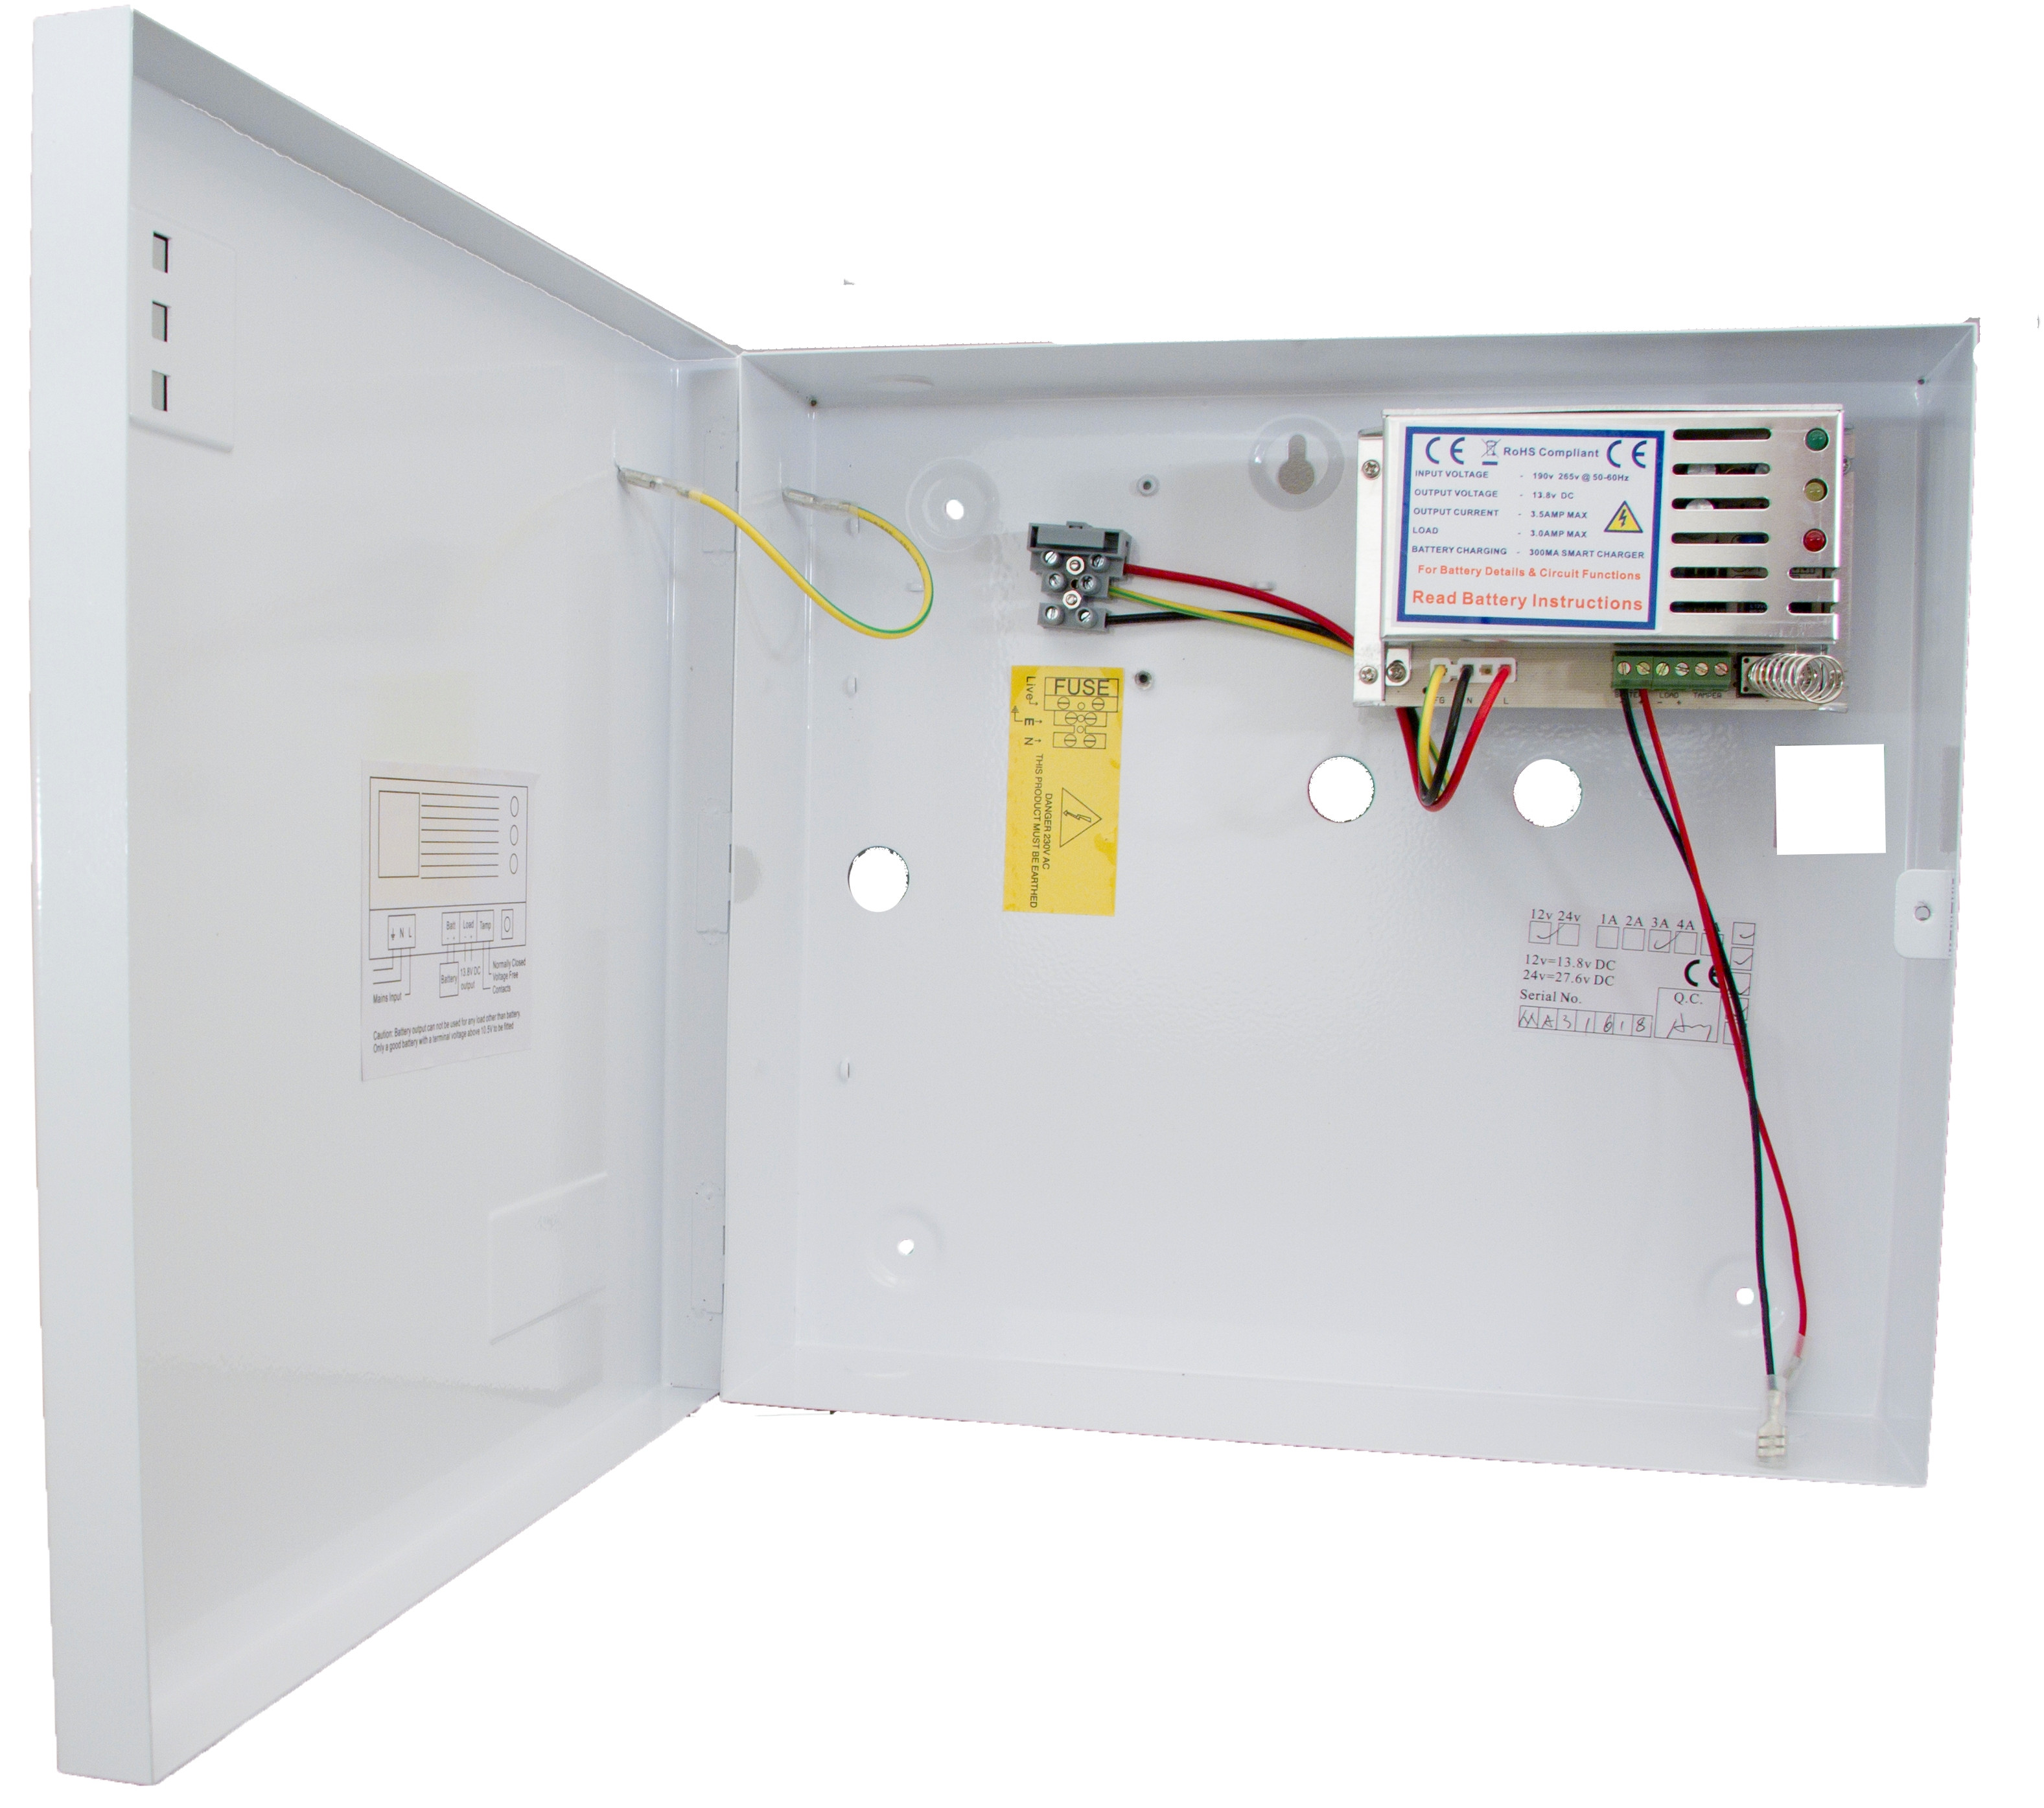 Psg702 Power Supplies Psg Switch Mode Dc Supply 138v Switchmode Unit 1 Amp Load Large Hinged Housing Multi Indicator Front Tamper Designed To House Up 9 Or 18 Ah Battery